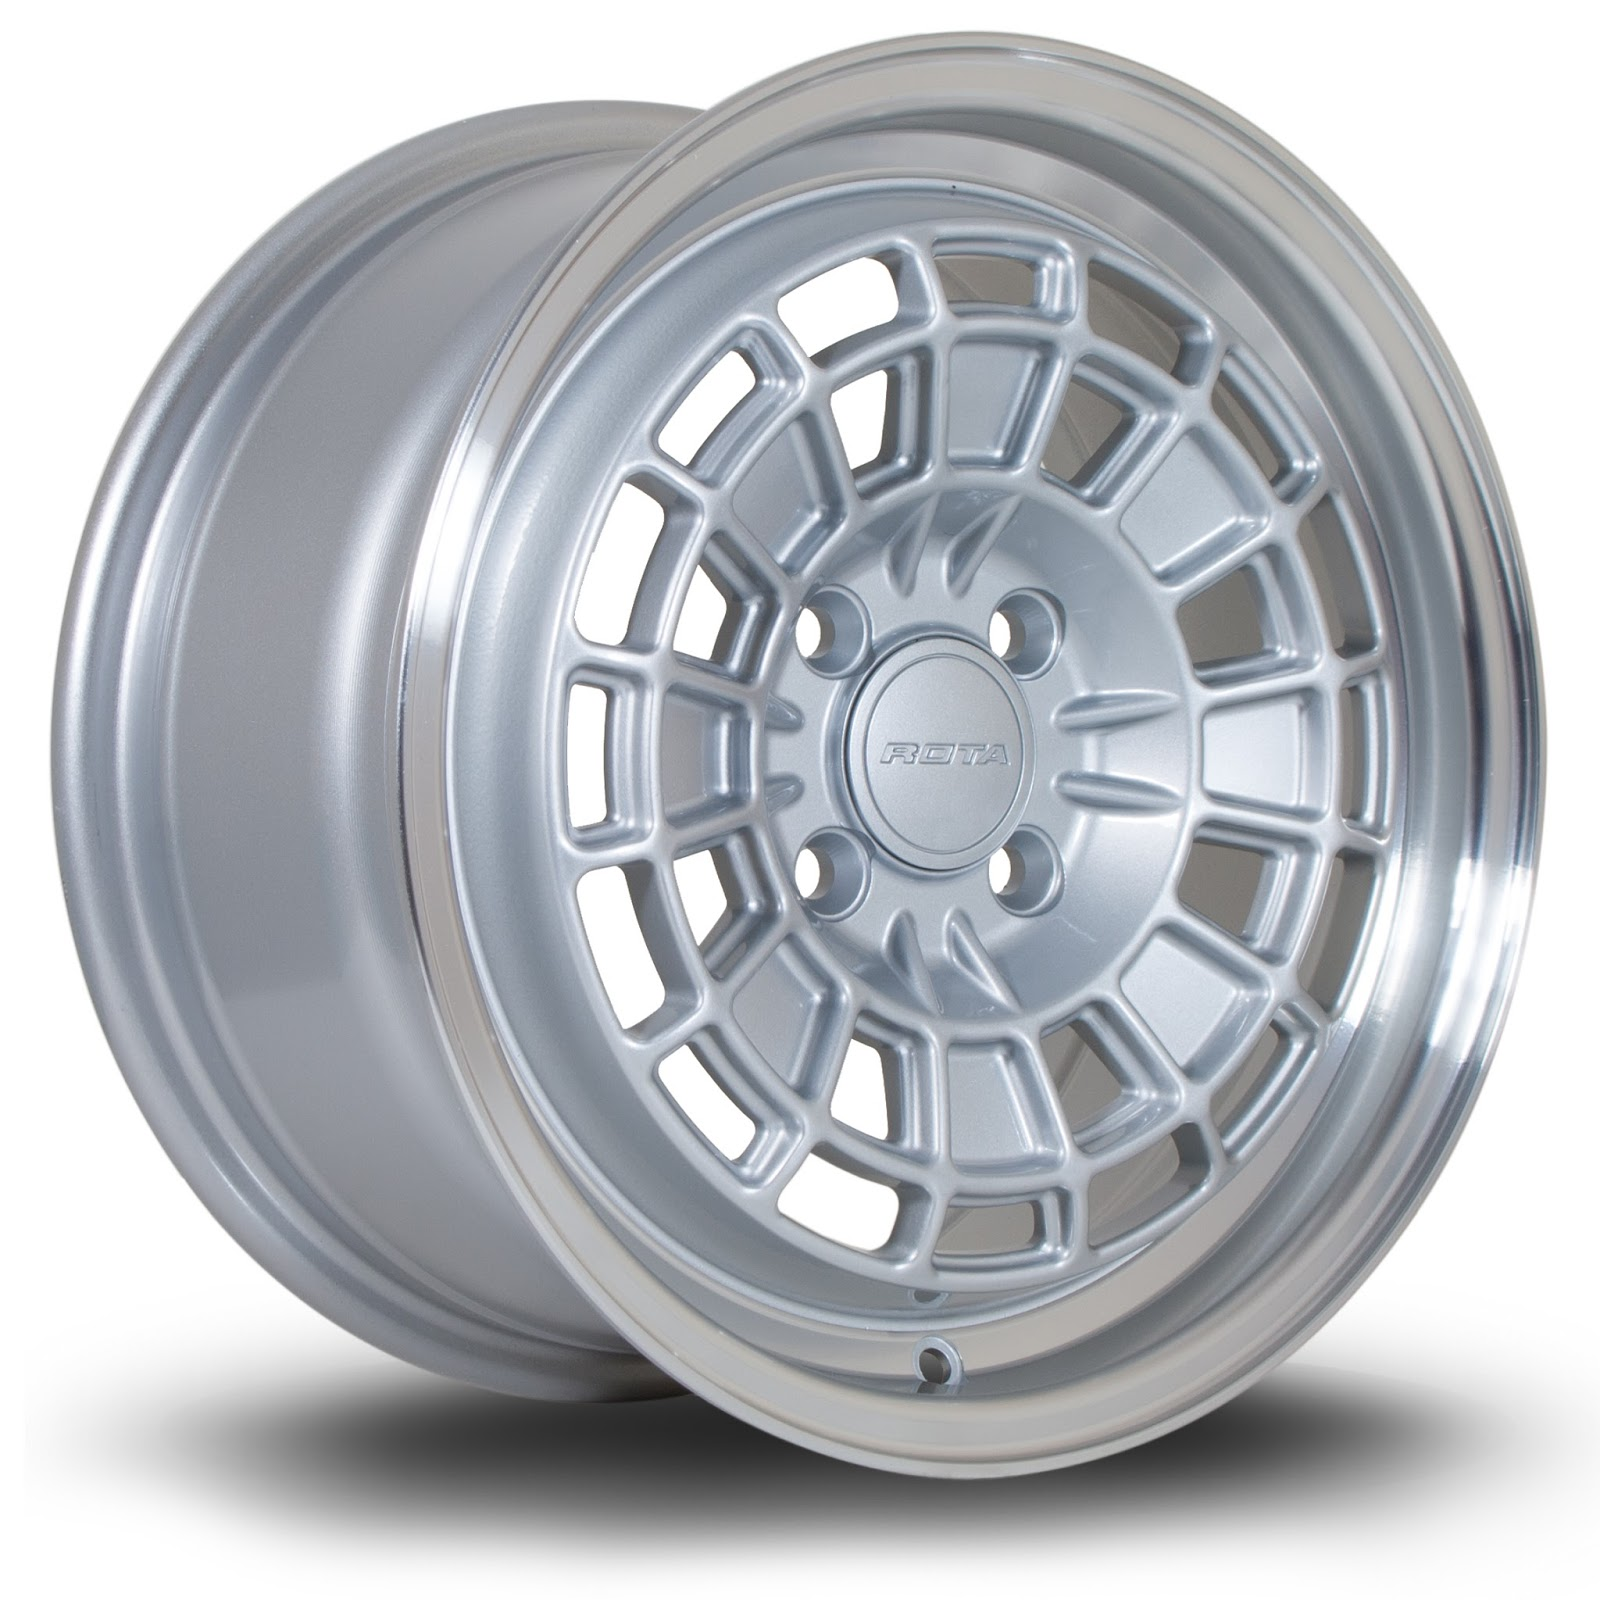 Another retro wheel design recreated freshly imported to the european market rota hb10 alloy wheels 15x7 et40 in 4x100 pcd all prices includes